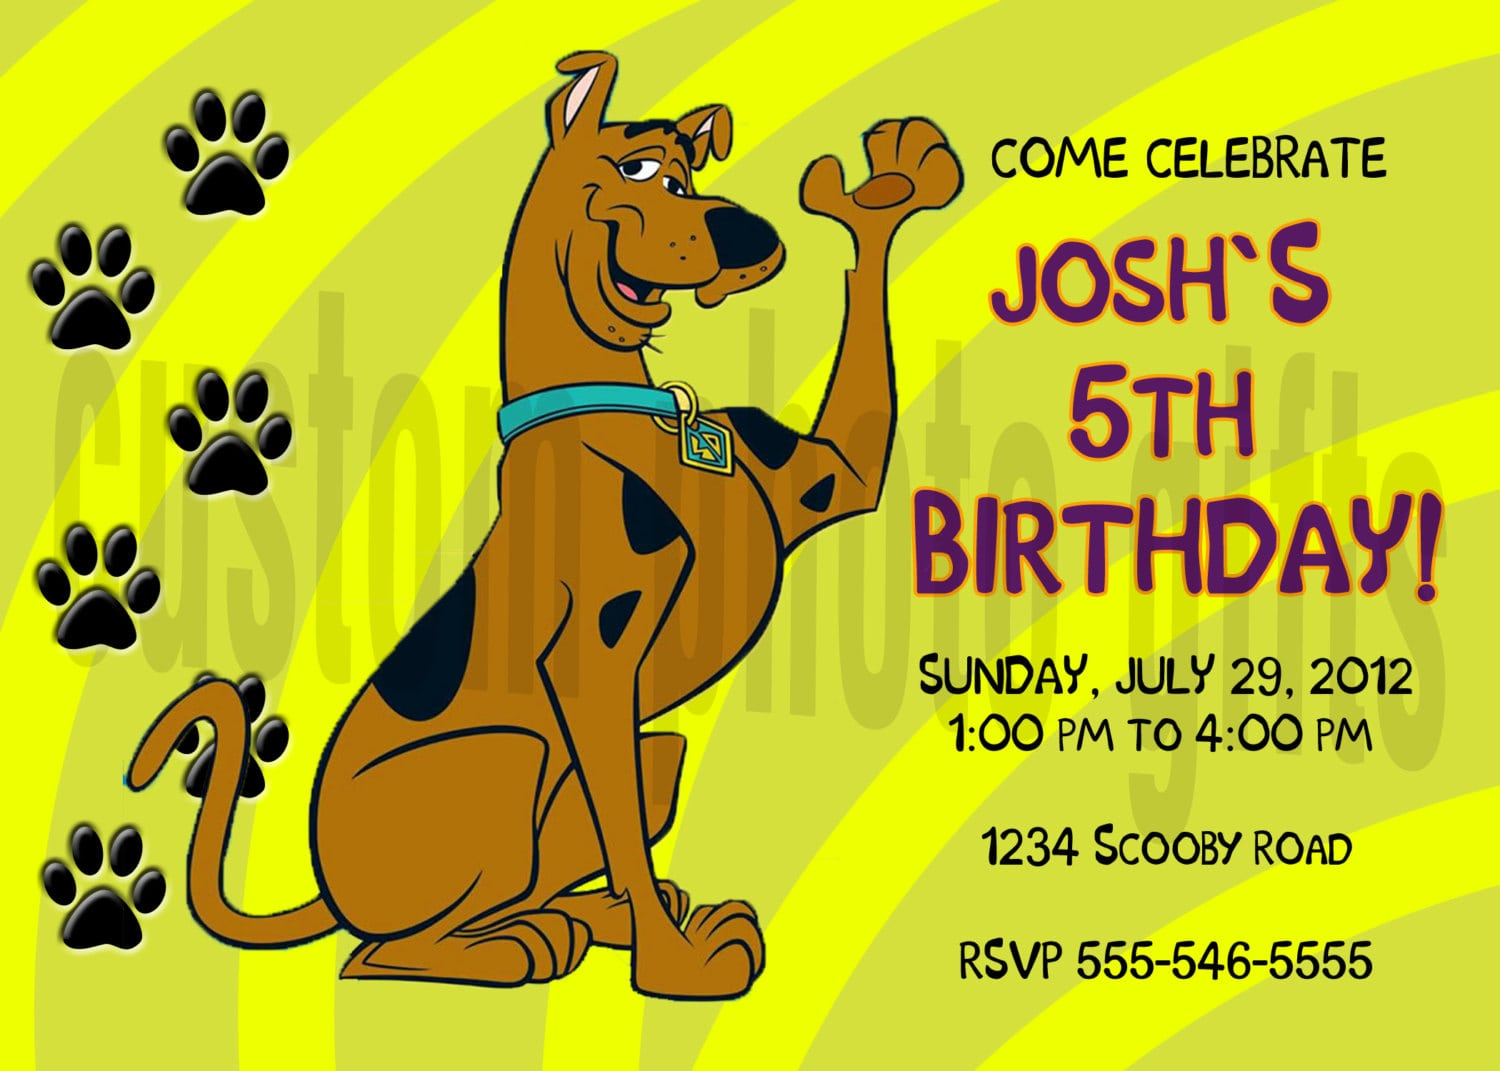 Scooby Doo Invitations Australia